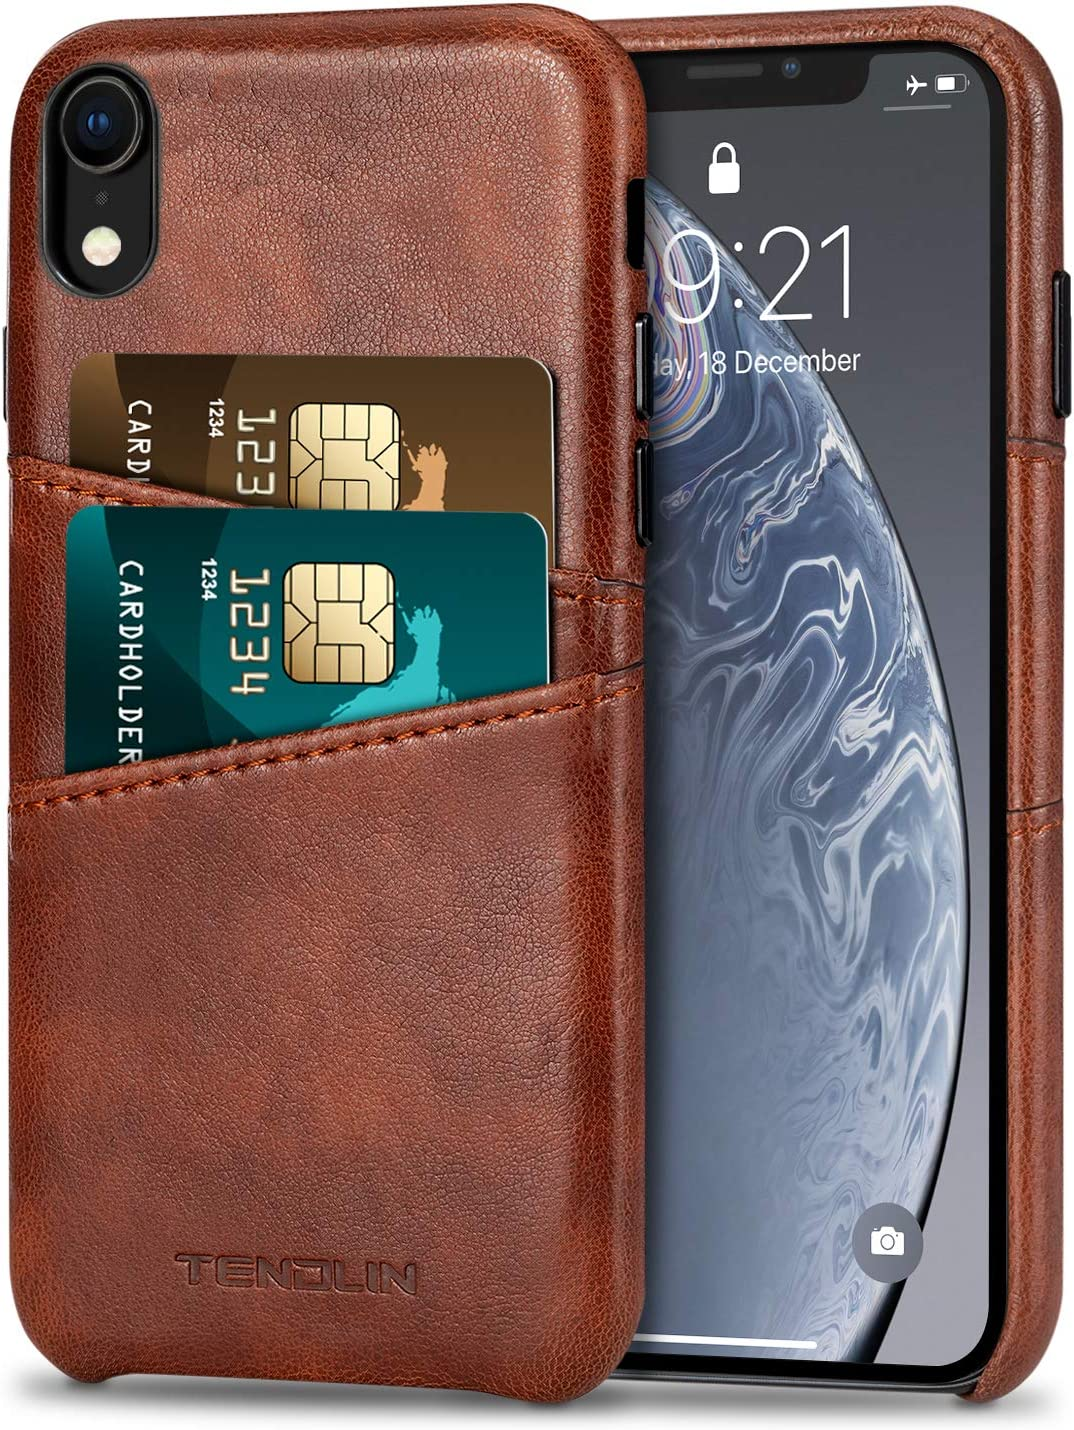 TENDLIN Compatible with iPhone XR Case Wallet Design Premium Leather Case with 2 Card Holder Slots Compatible with iPhone XR (Brown)